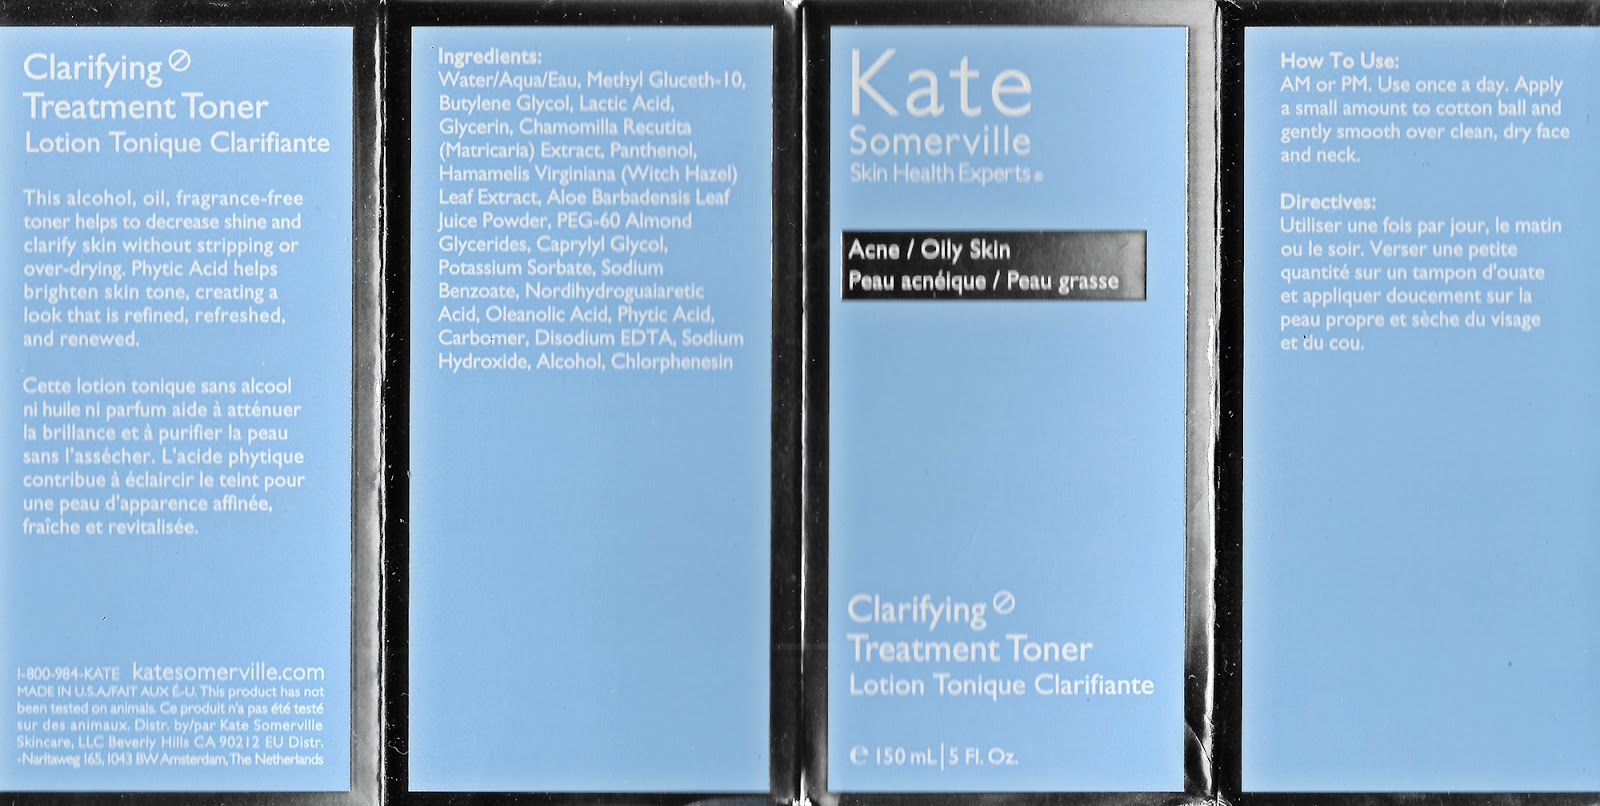 lavlilacs Review Kate Somerville Clarifying Treatment Toner packaging